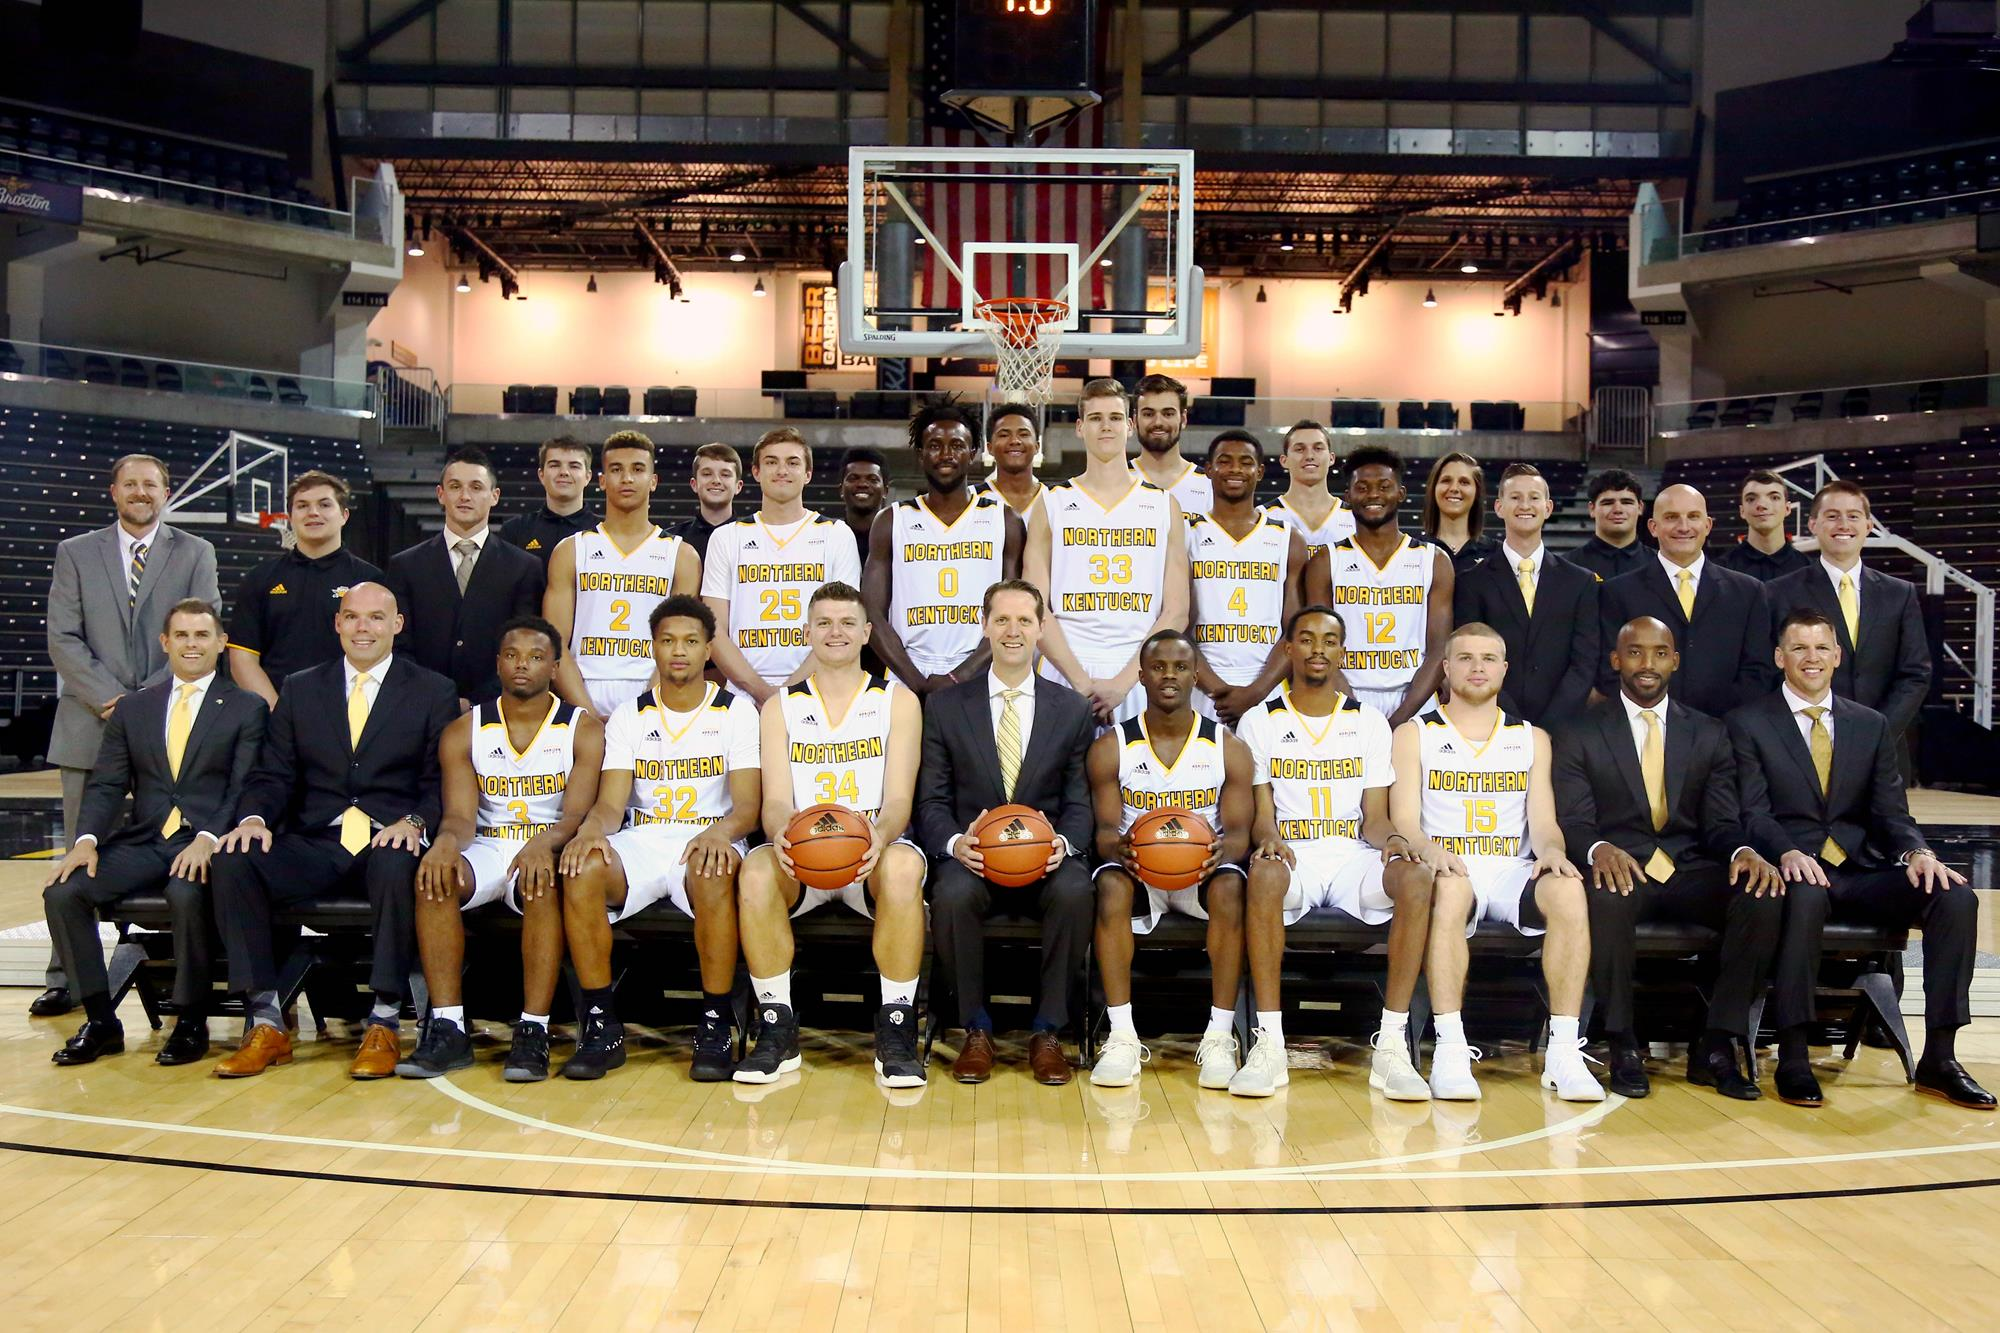 photograph about Kentucky Basketball Schedule Printable called 2018-19 Mens Basketball Roster - Northern Kentucky